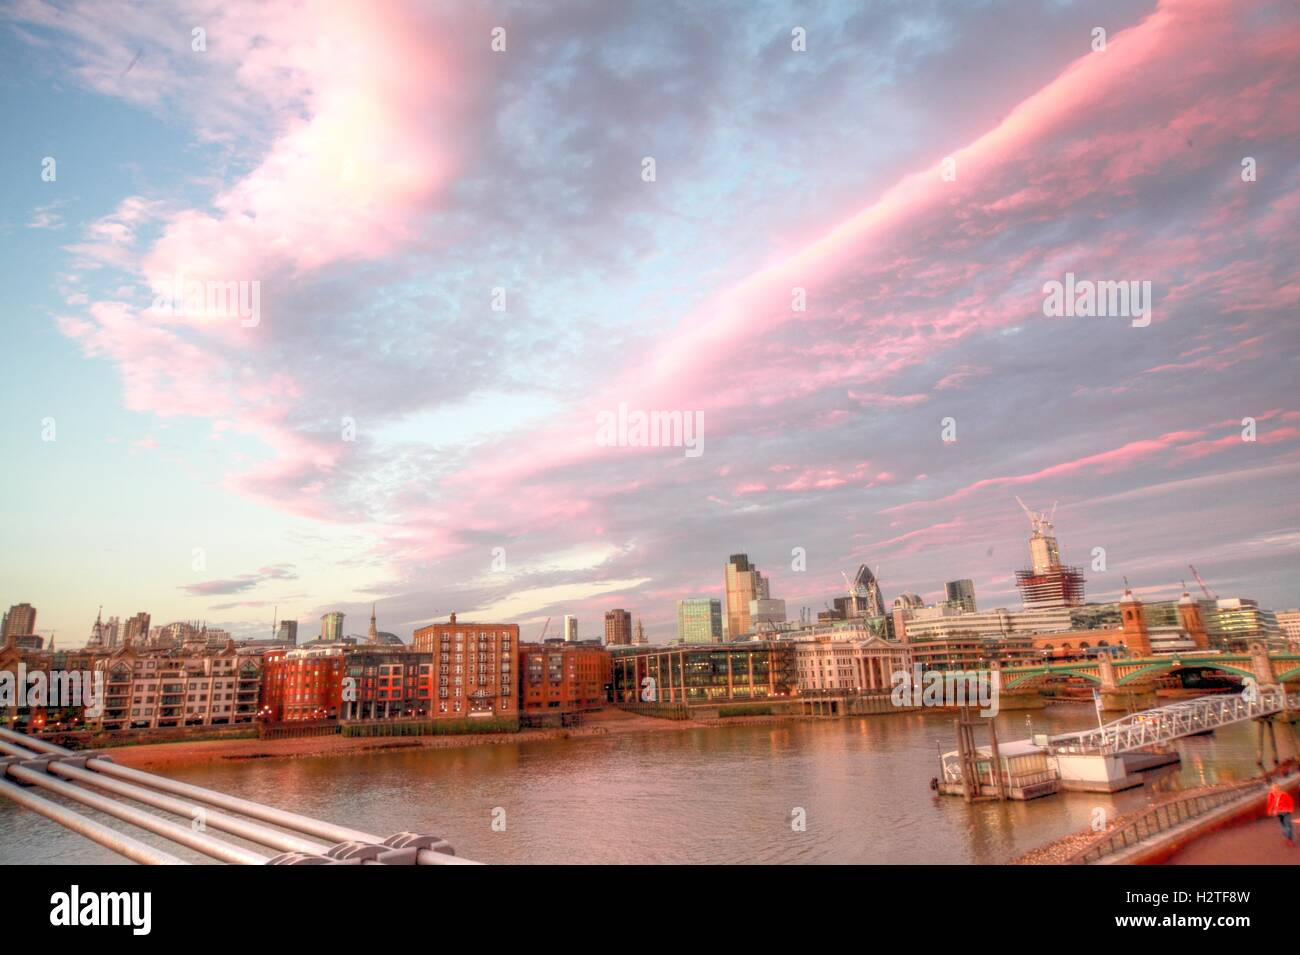 River Thames Panorama, London, England with stunning sky - Stock Image